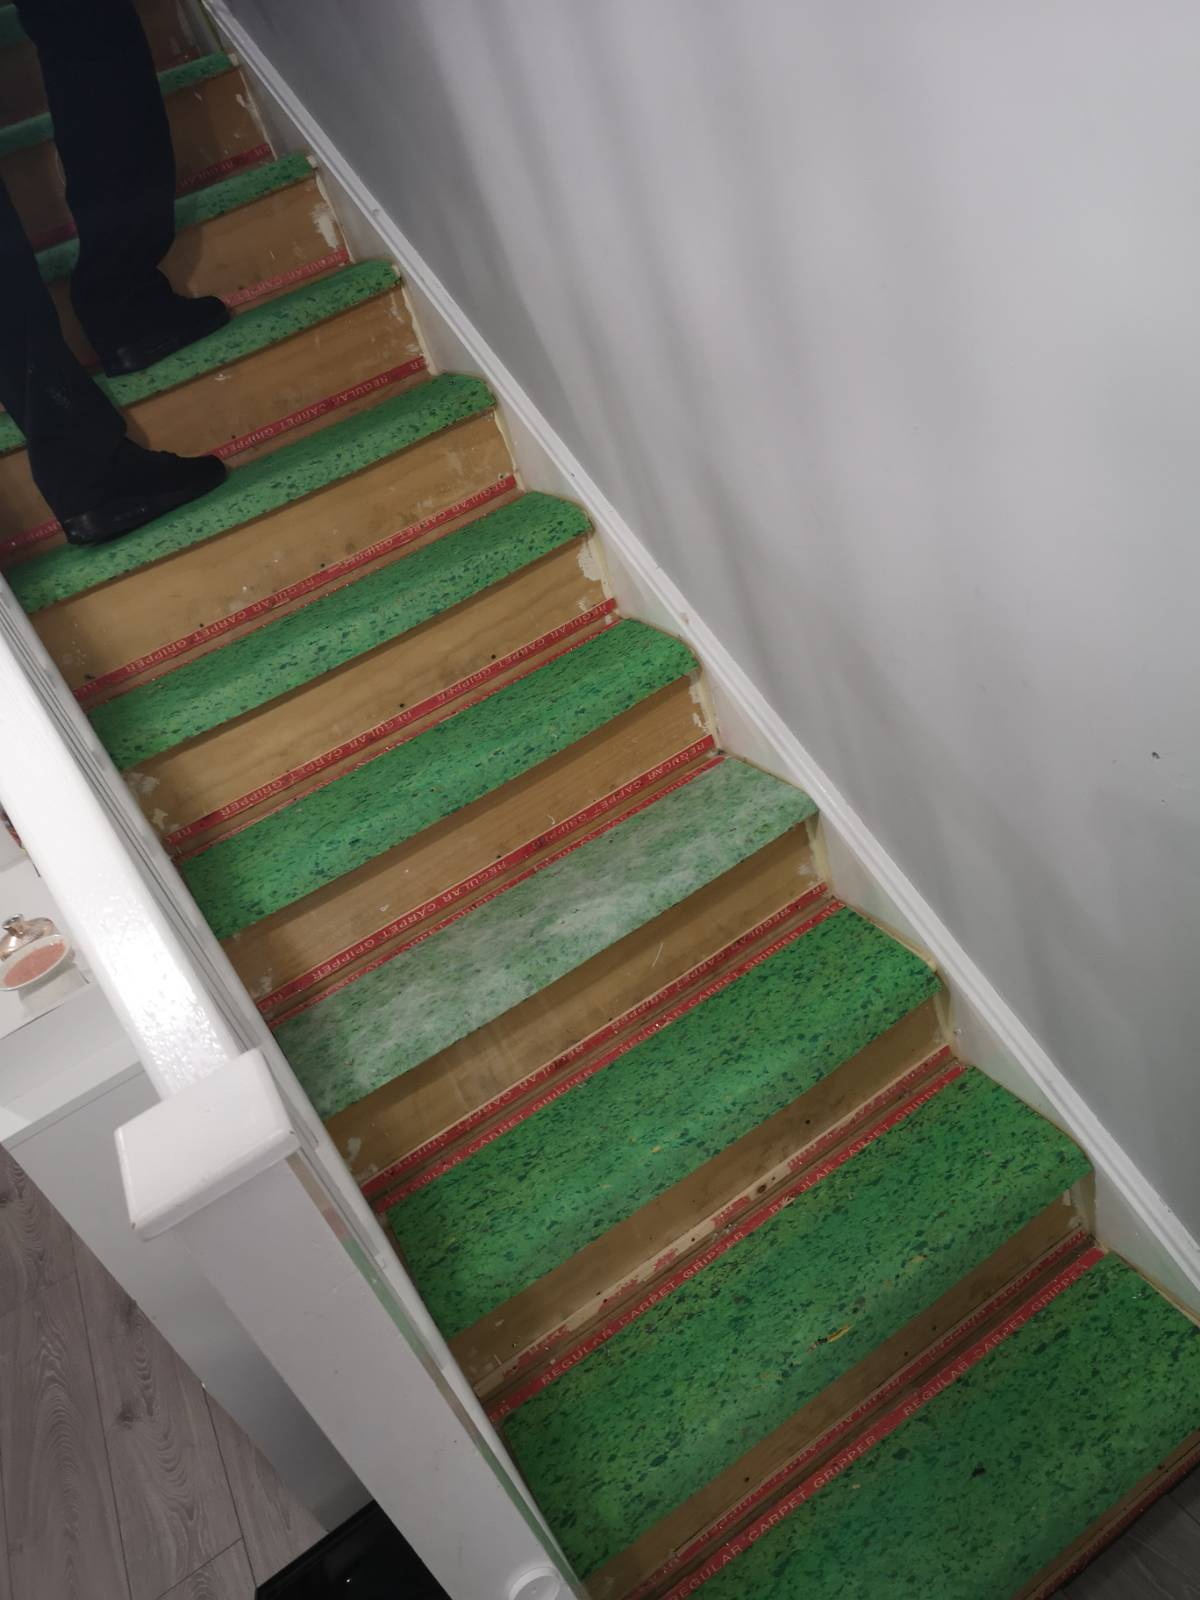 underlay fitted on staircases ready for carpet to be fitted